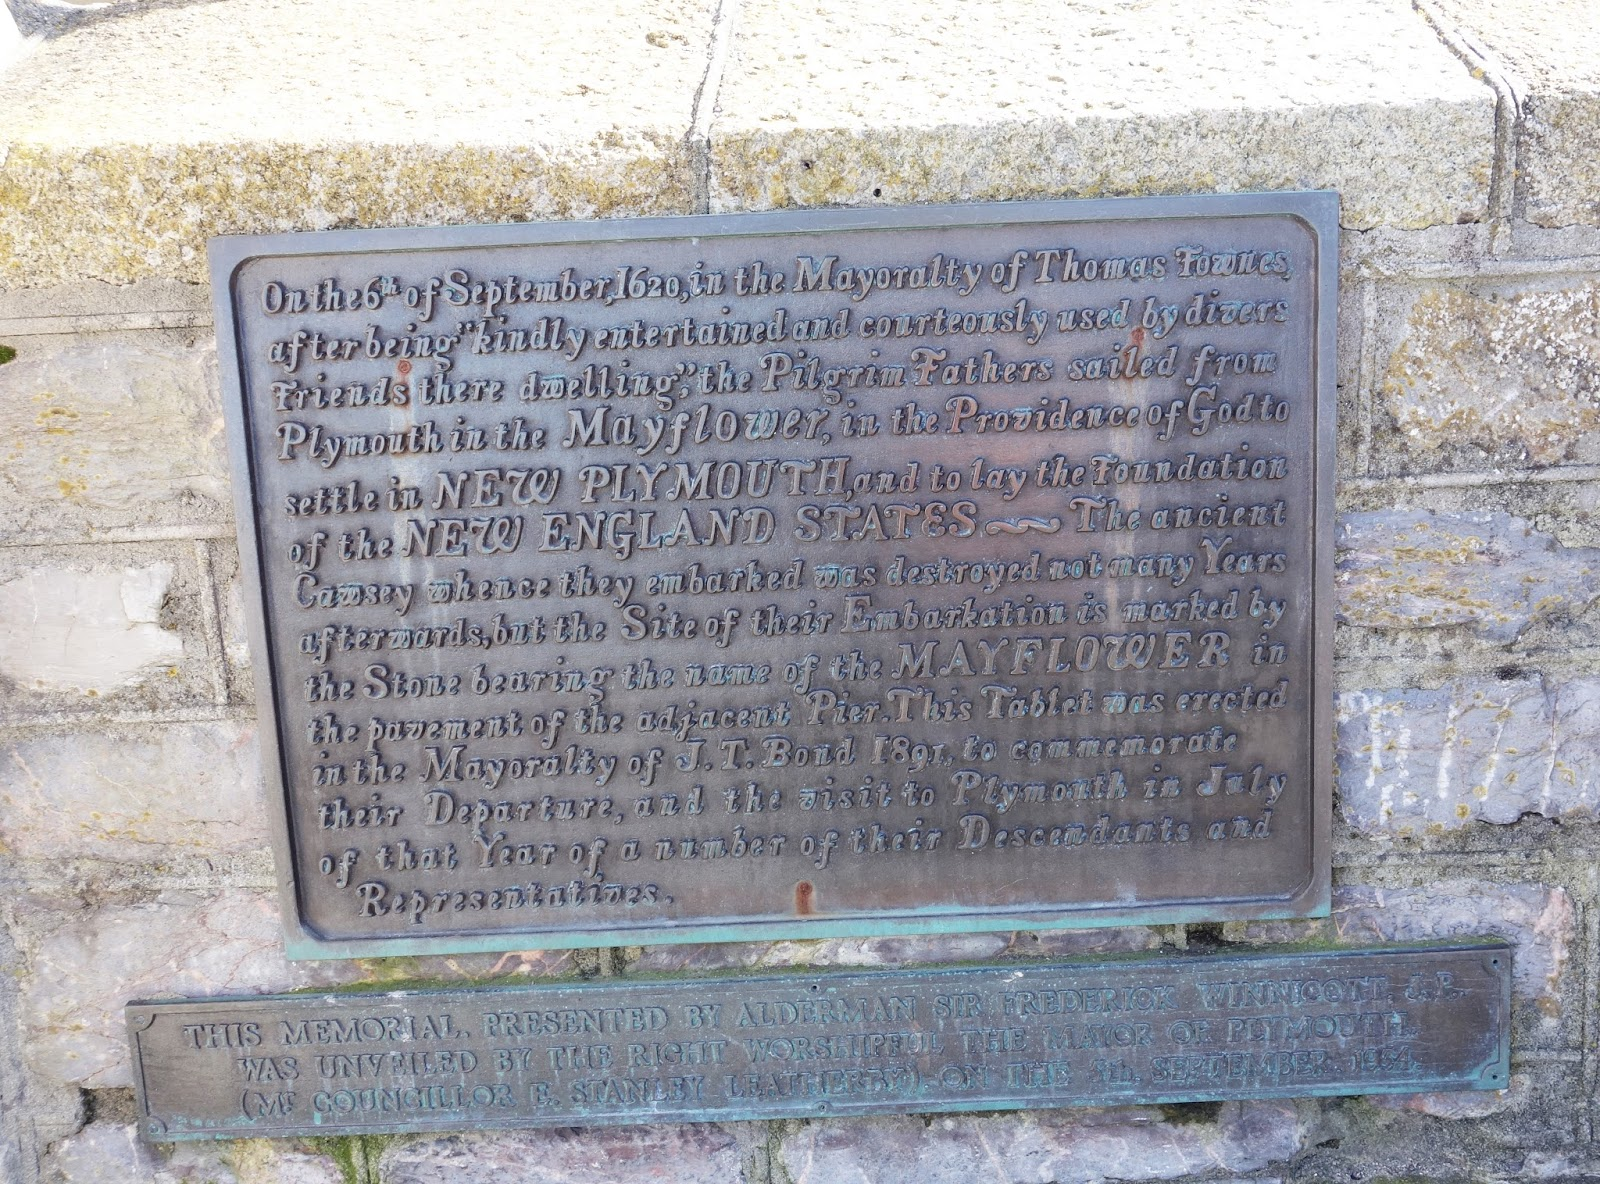 Plaque commemorating the sailing of the Pilgrim Fathers from Plymouth, Devon, in 1620